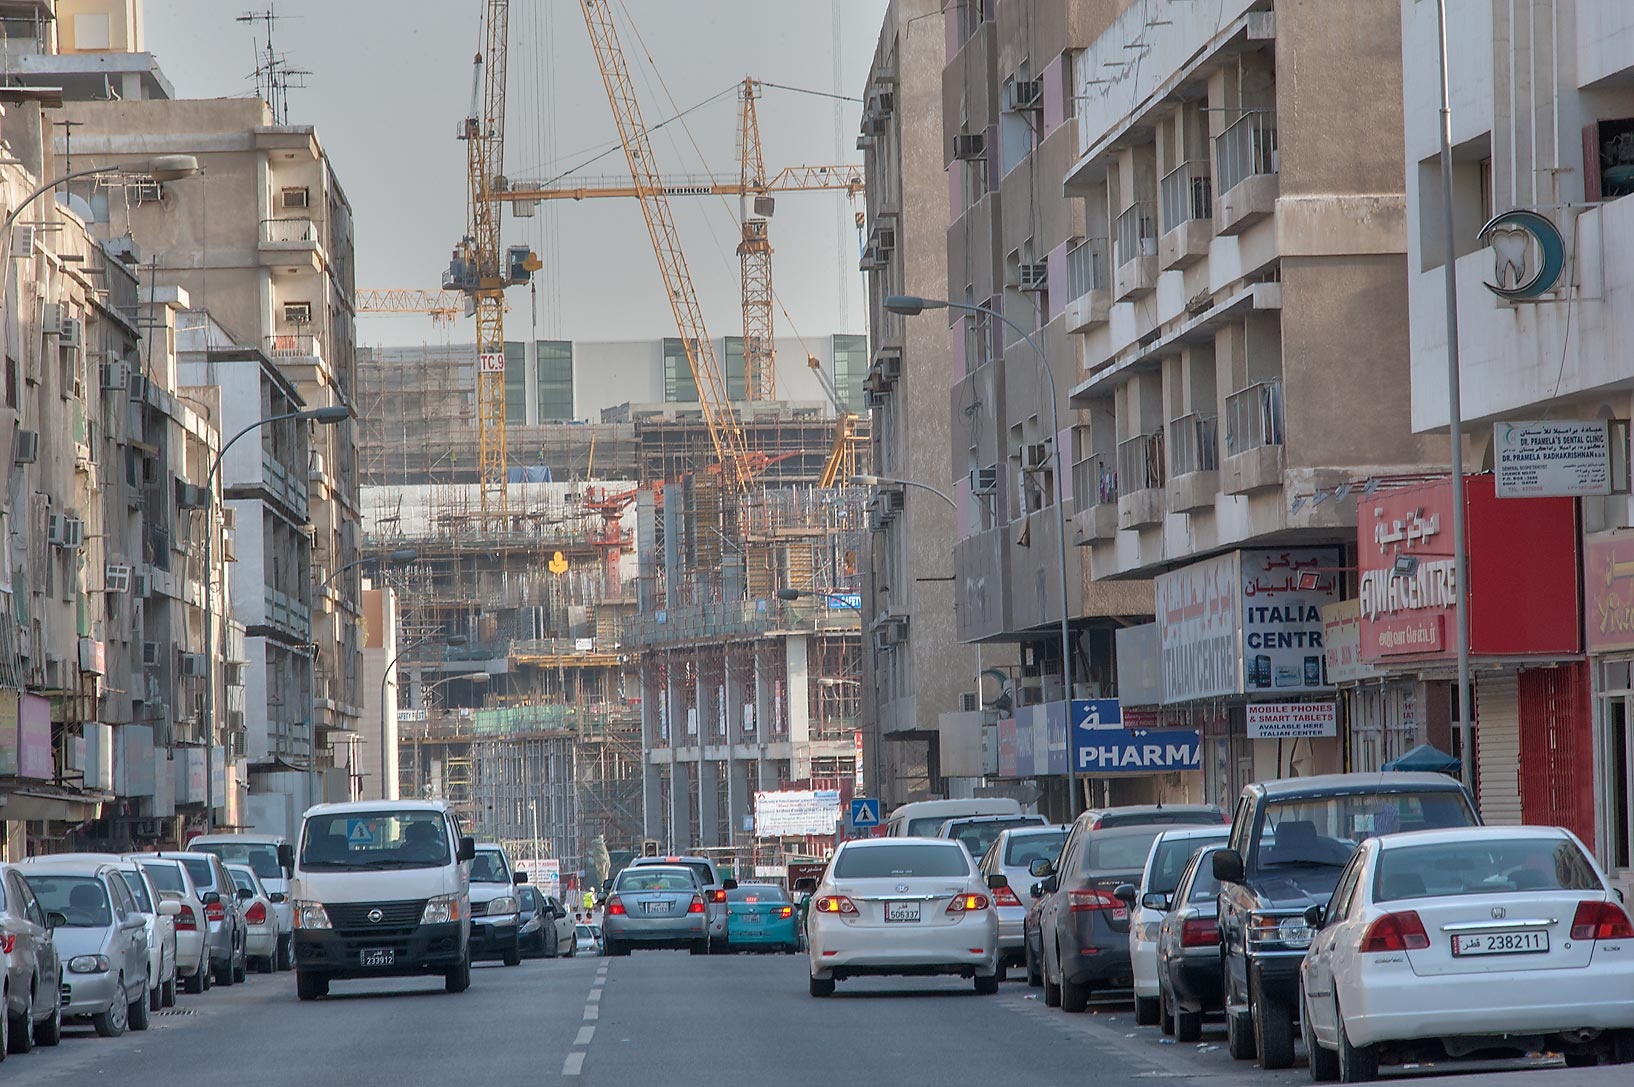 Abdullah Bin Thani St., with Musheireb Development in background. Doha, Qatar